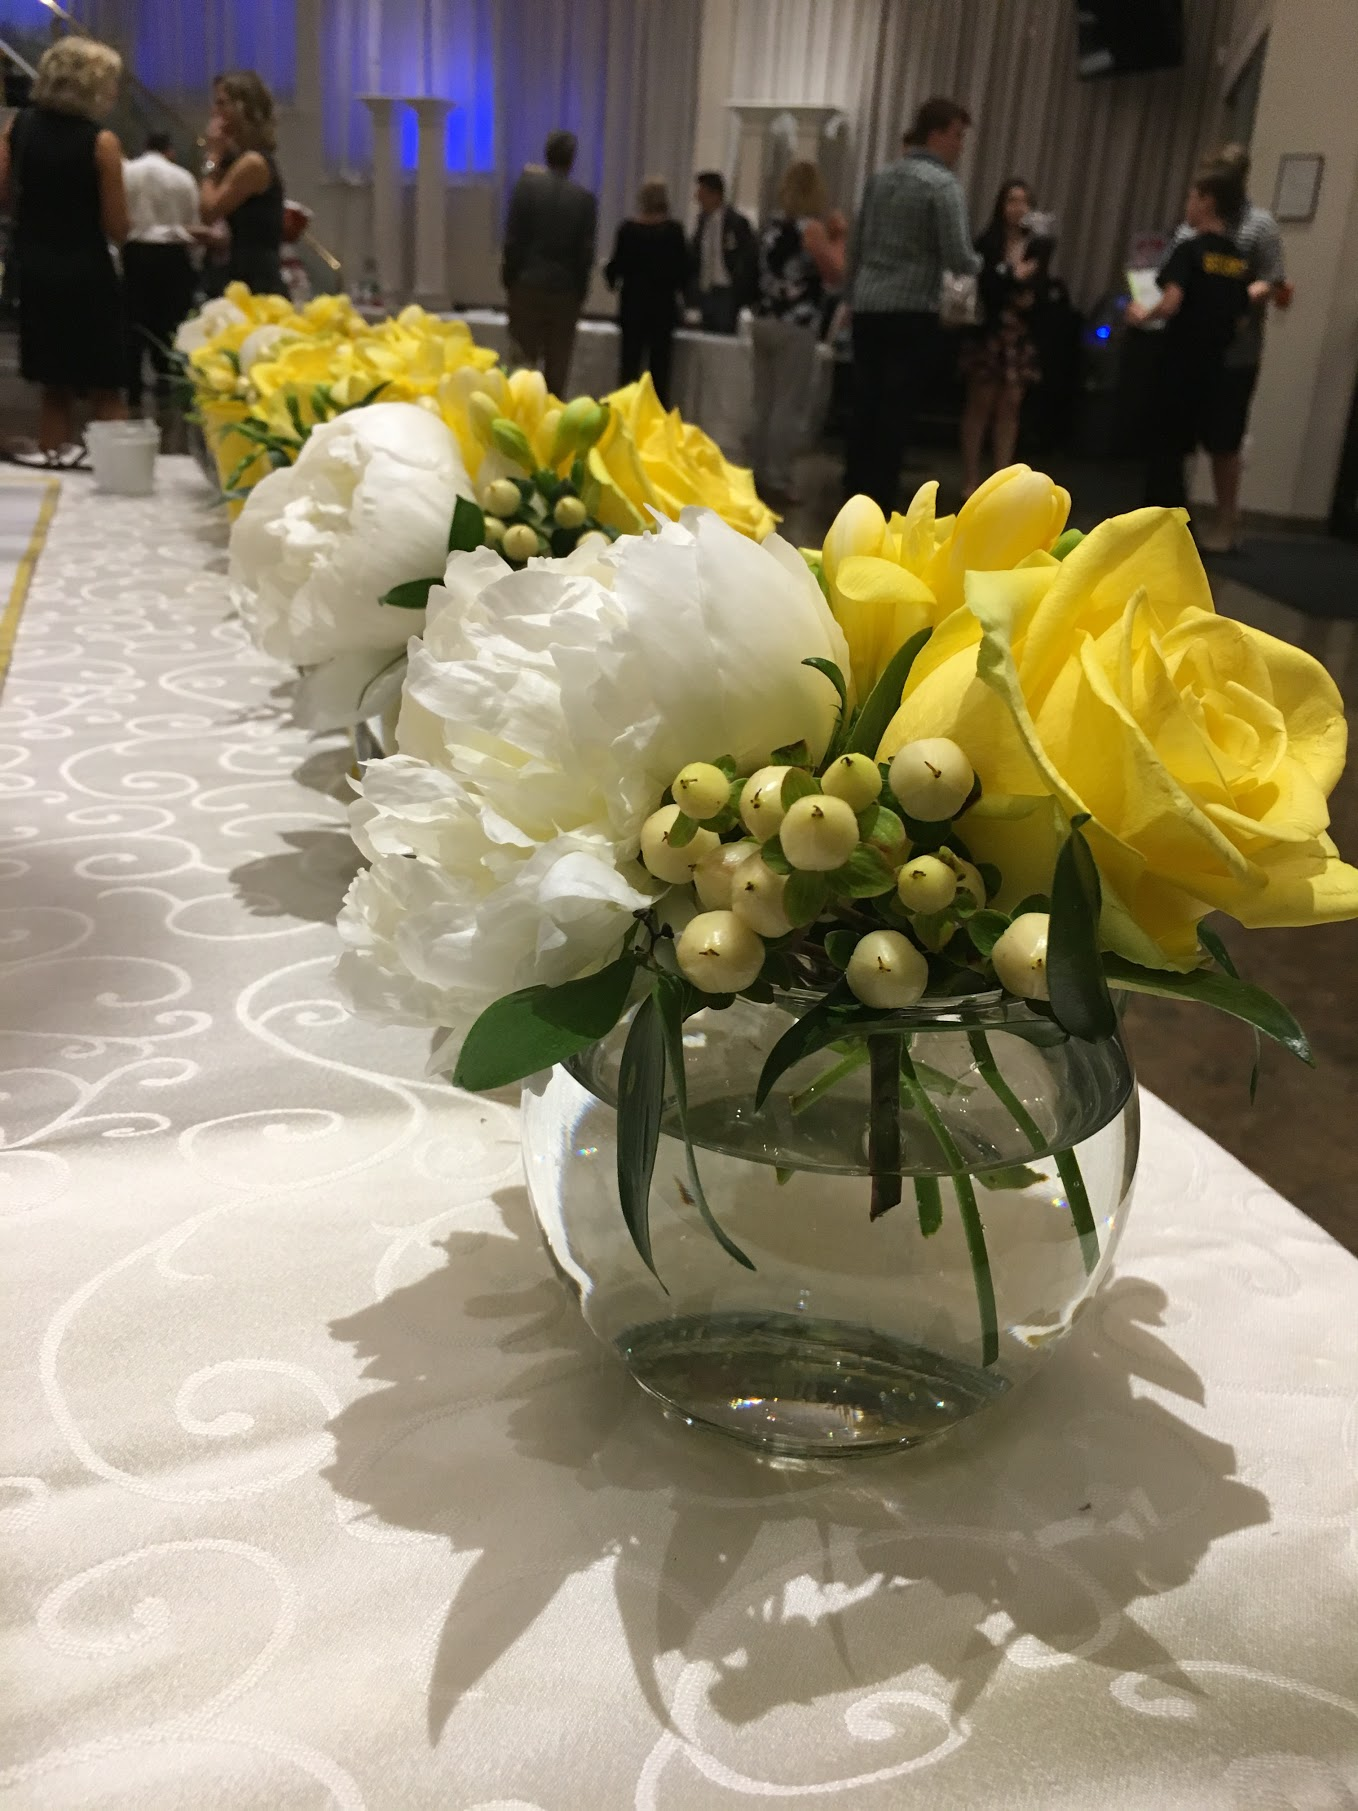 Ryans Fundraiser – Flowers from Curly Willow